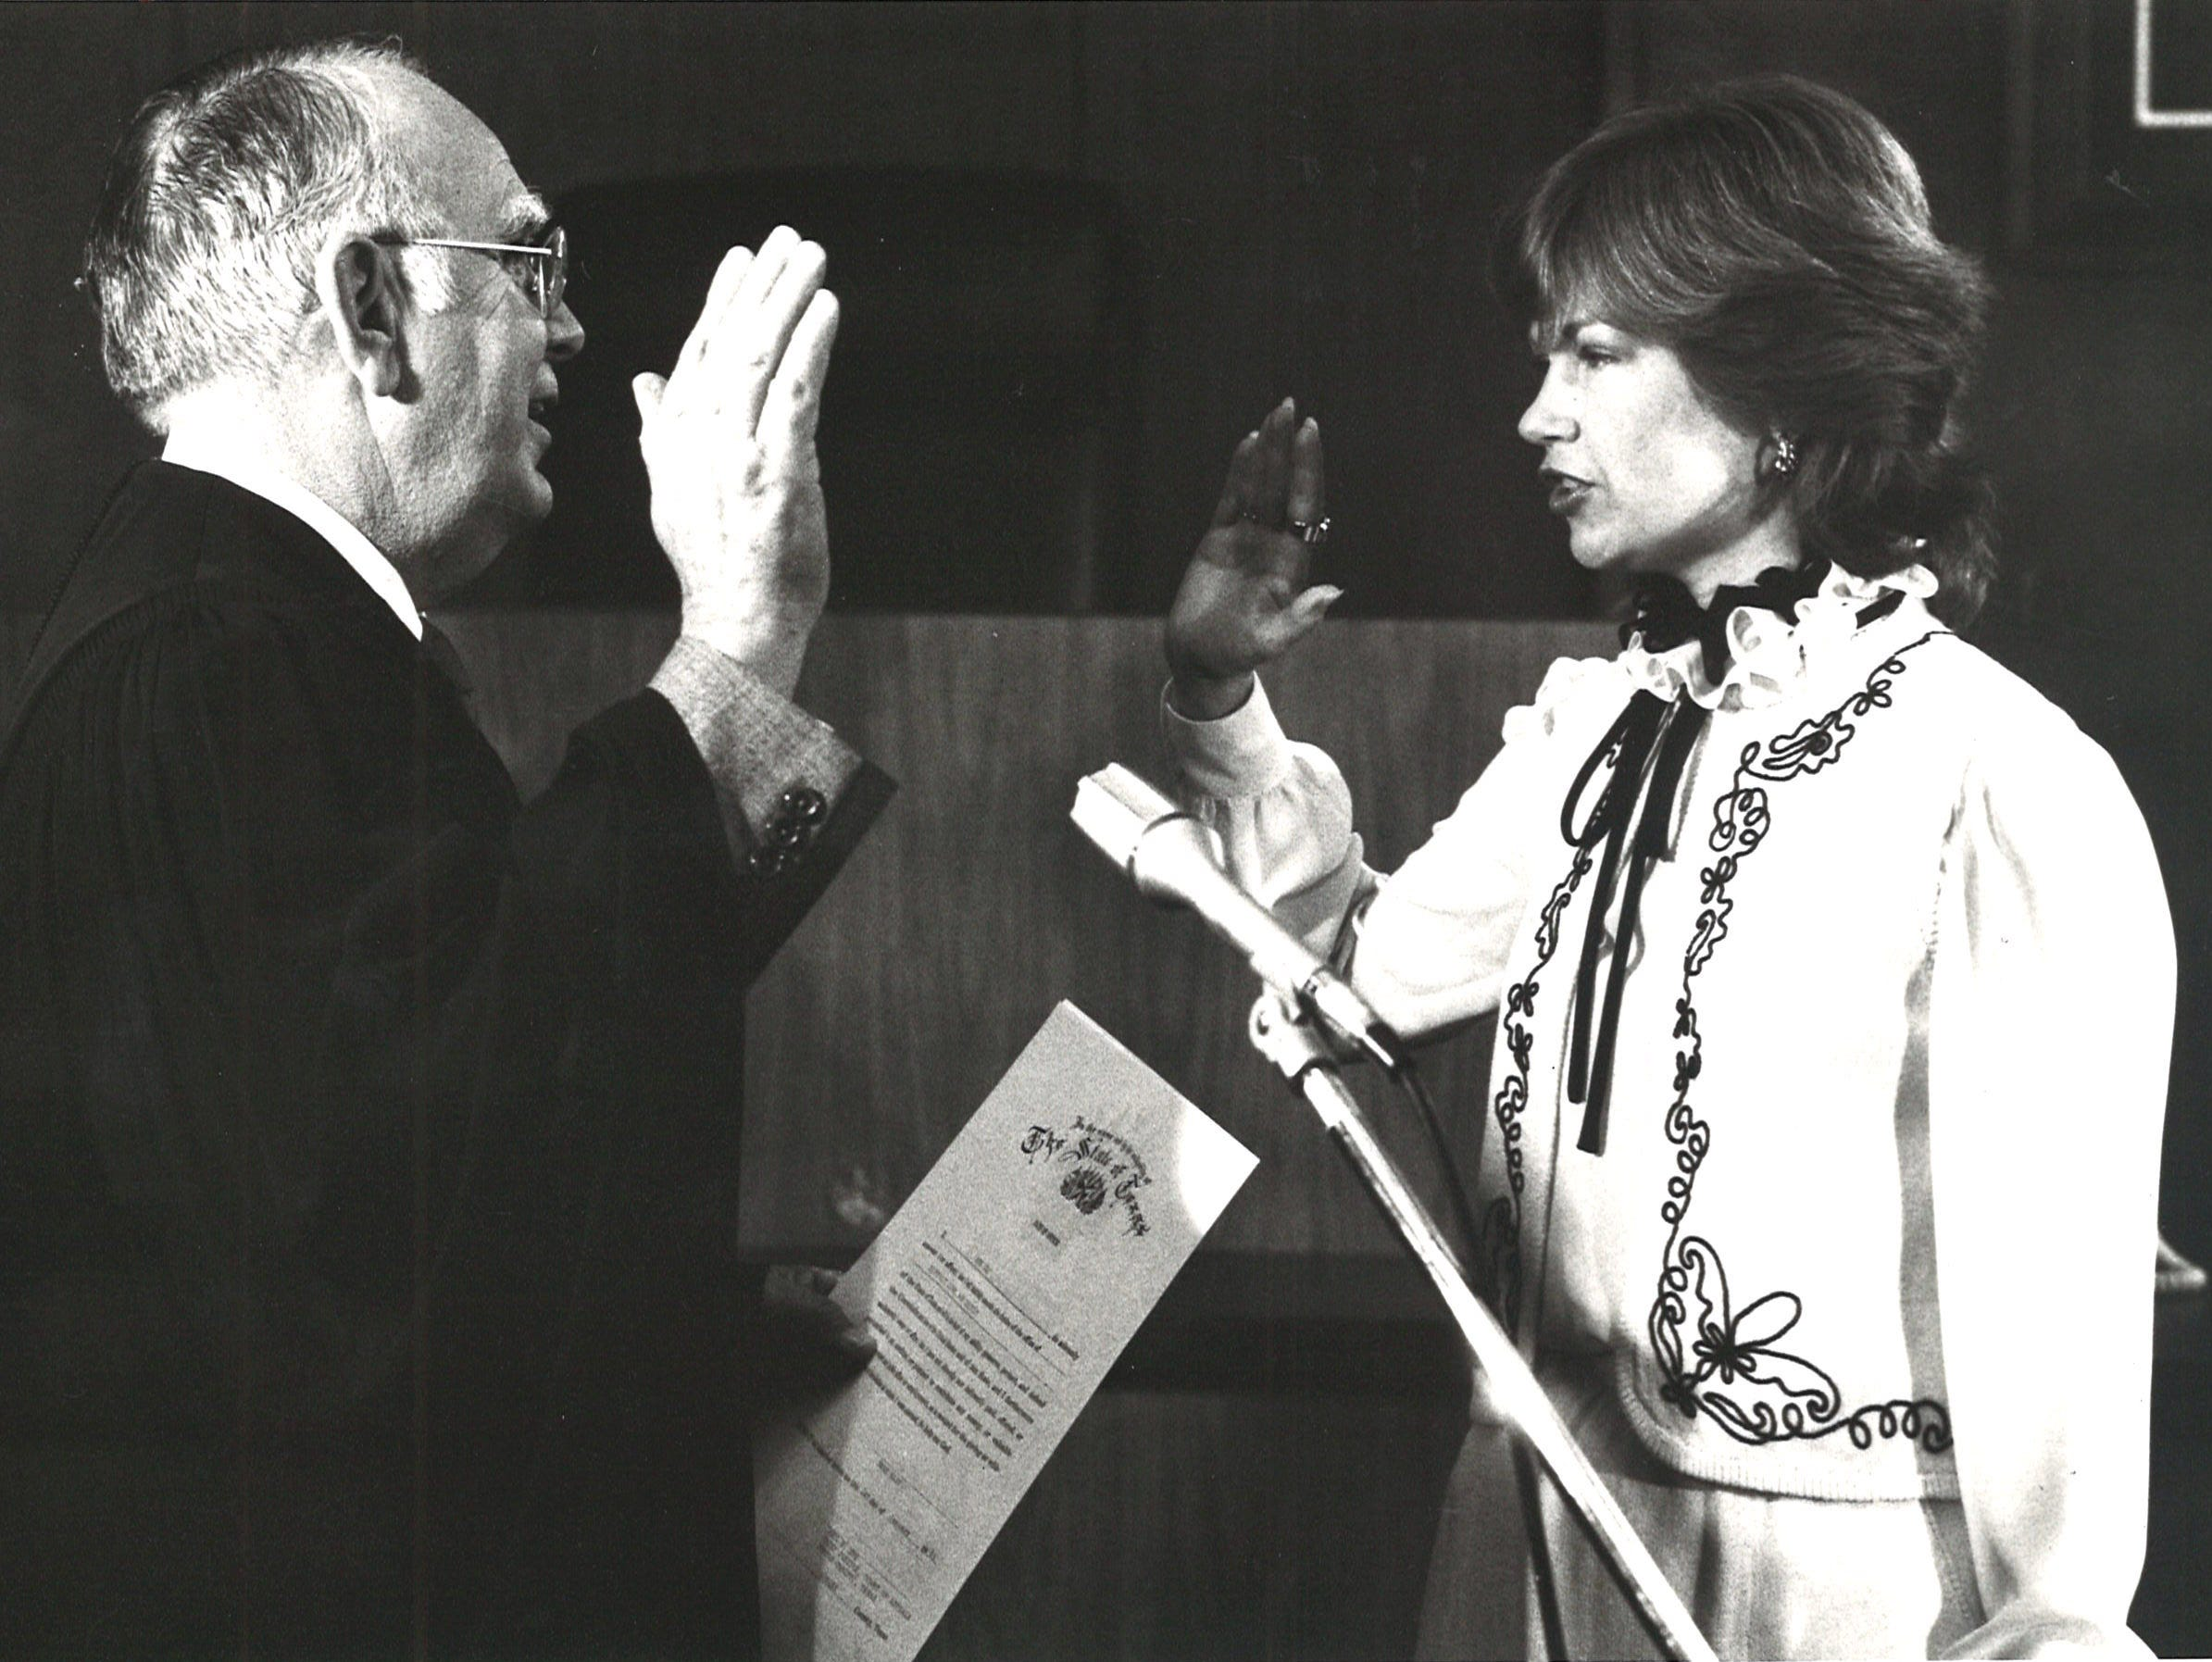 Rene Haas is sworn in as the judge of the 94th District Court on Jan. 1, 1983 in the Nueces County Courthouse. Chief Justice Paul Nye of the 13th Court of Appeals administered the oath of office.